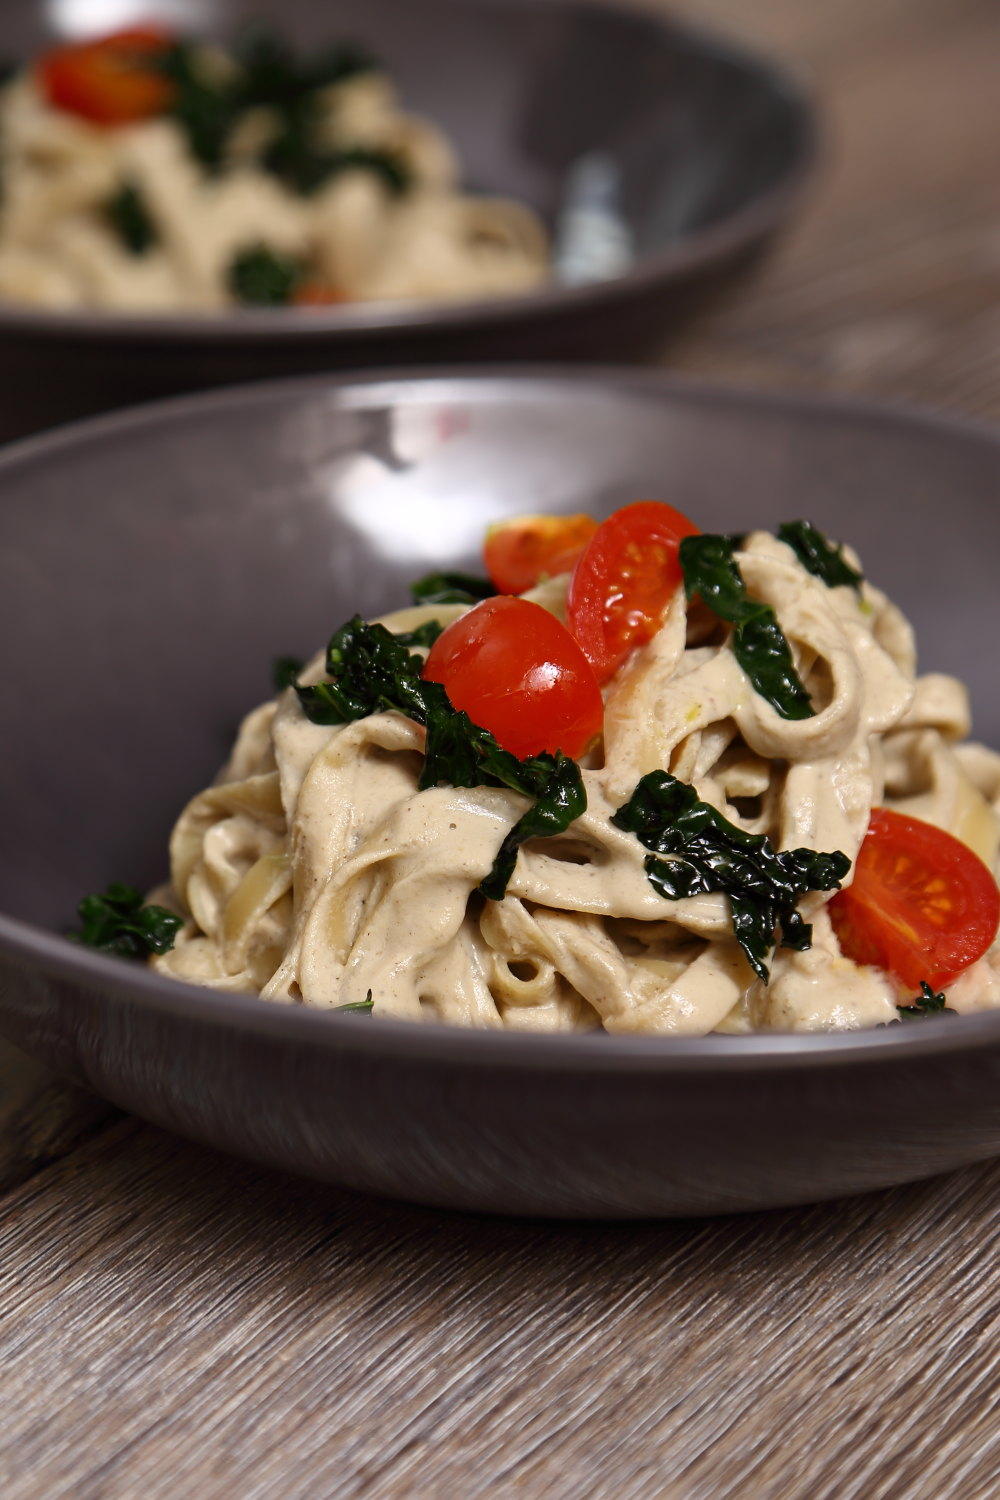 Vegan Alfredo Sauce - Vegan Pasta Alfredo served with black kale and cherry tomatoes